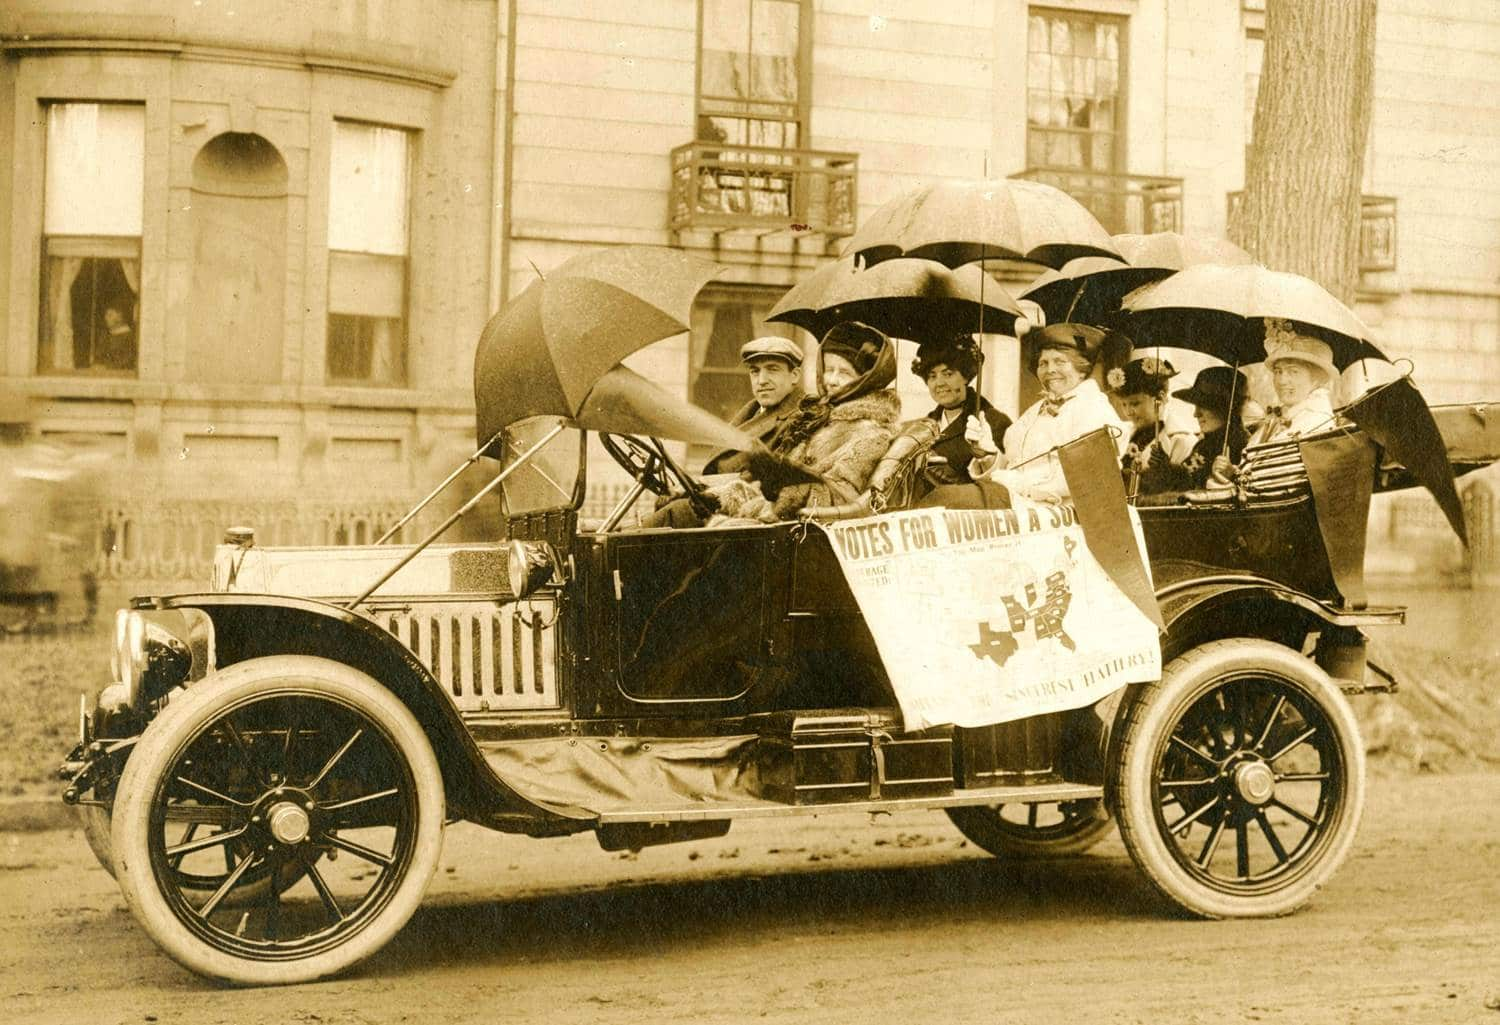 """Maine Suffragists in a Portland Maine parade, 1914. A group of people in a car on the street with umbrellas over their heads and a map of America that reads """"Votes for Women a Success."""""""